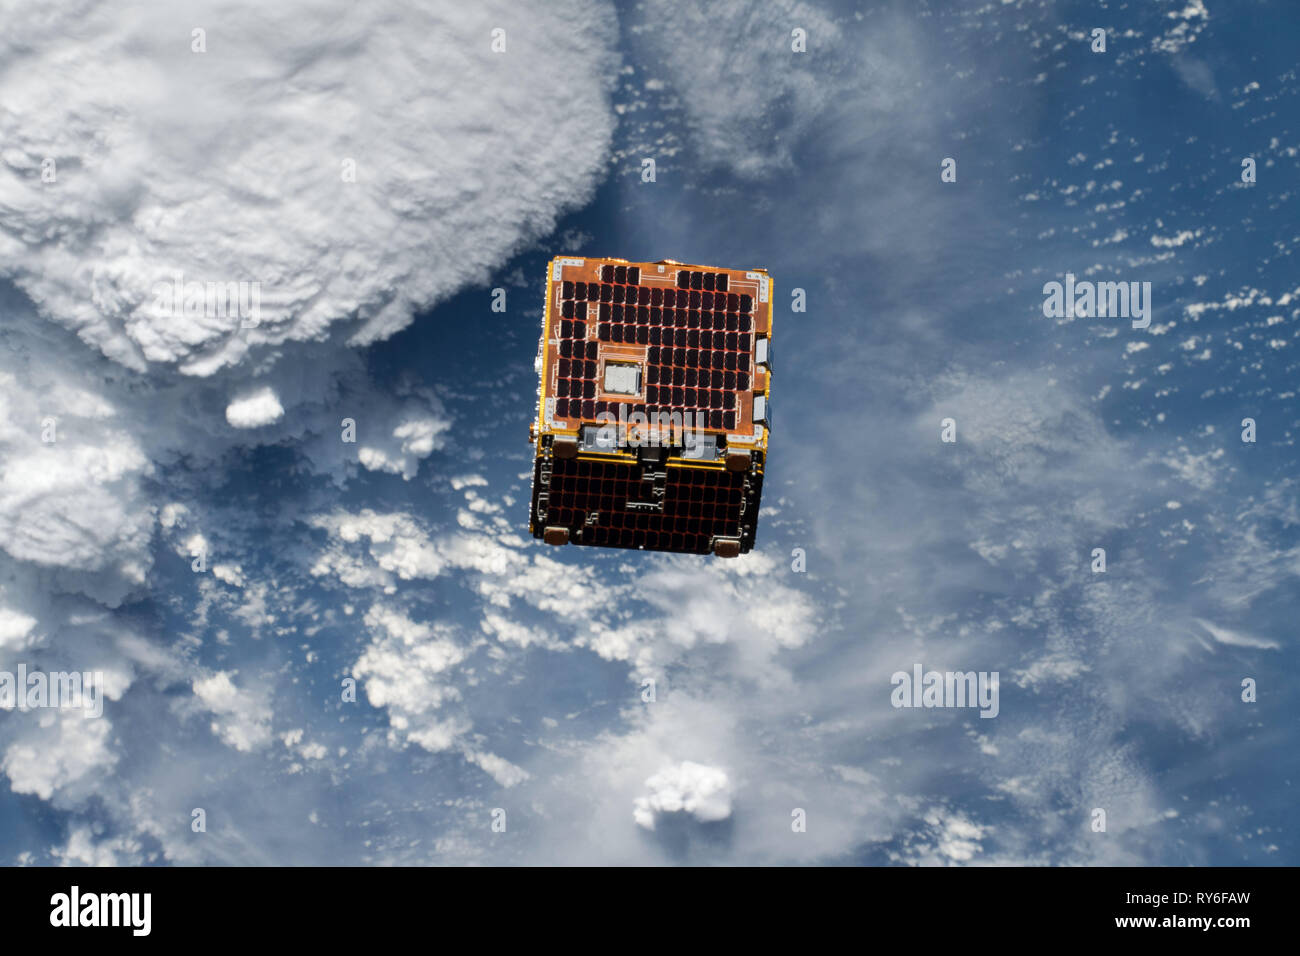 NanoRacks-Remove Debris satellite was deployed on June 20, 2018,​ from the International Space Station. - Stock Image